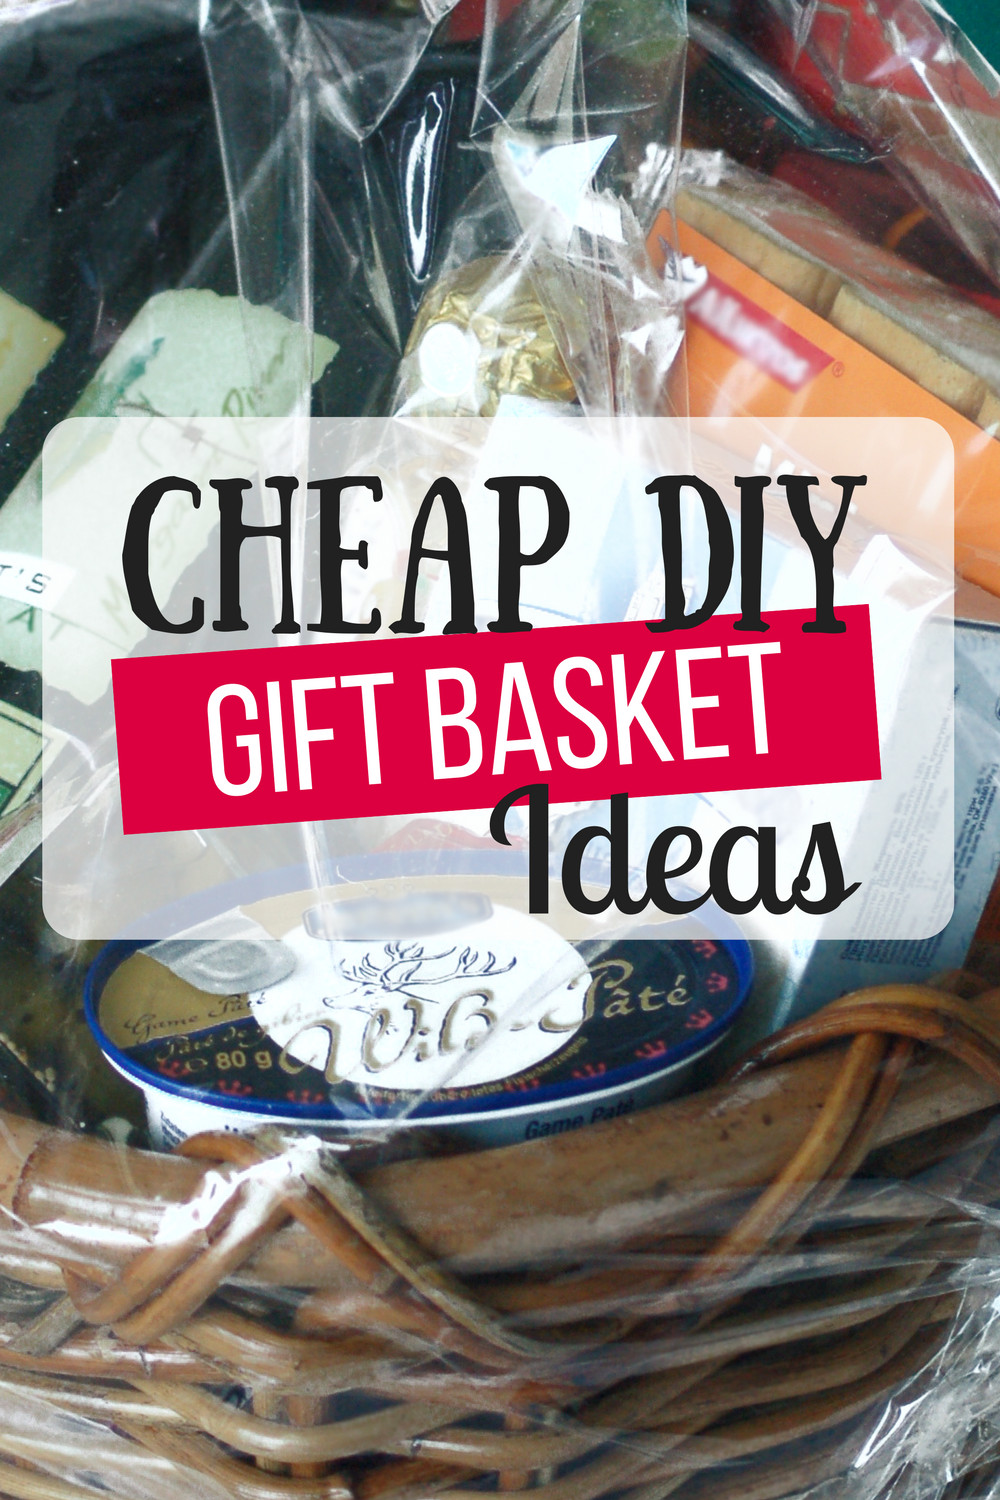 Cheap Christmas Gift Ideas For Couples  Cheap DIY Gift Baskets The Busy Bud er